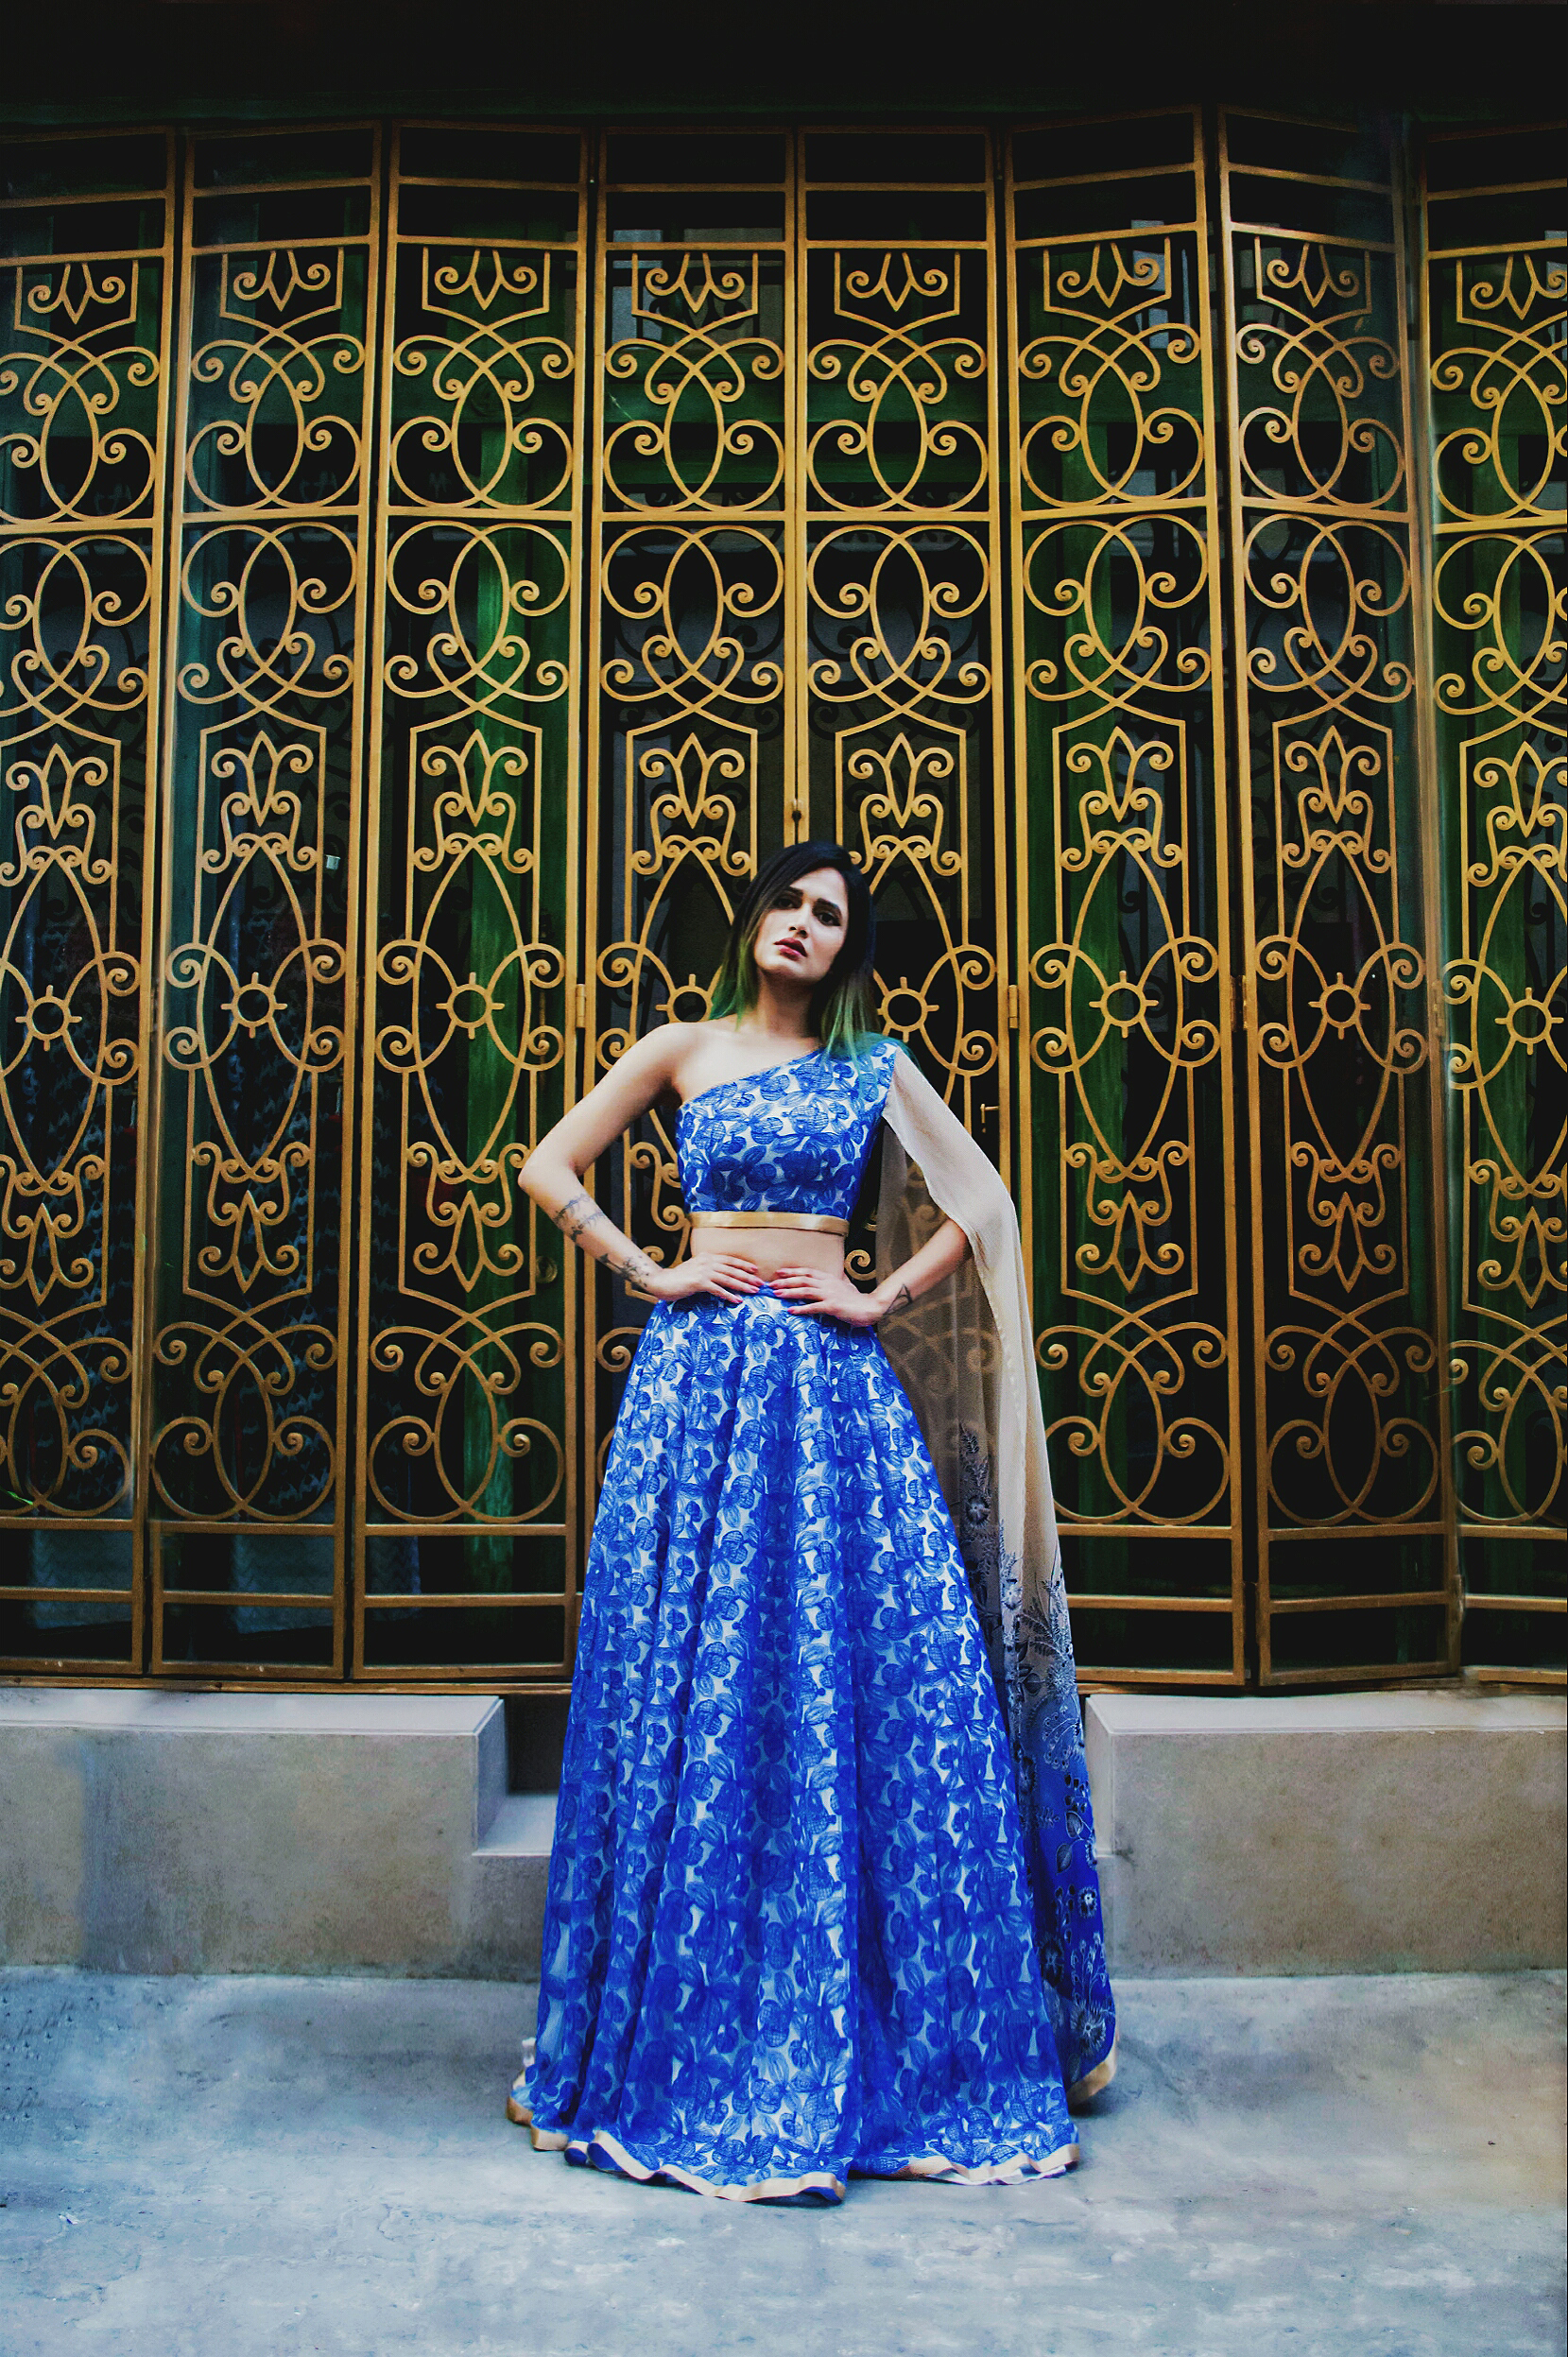 The-Chic-Armoire-by-Nidhi-Kunder-Couture-Mantra-8